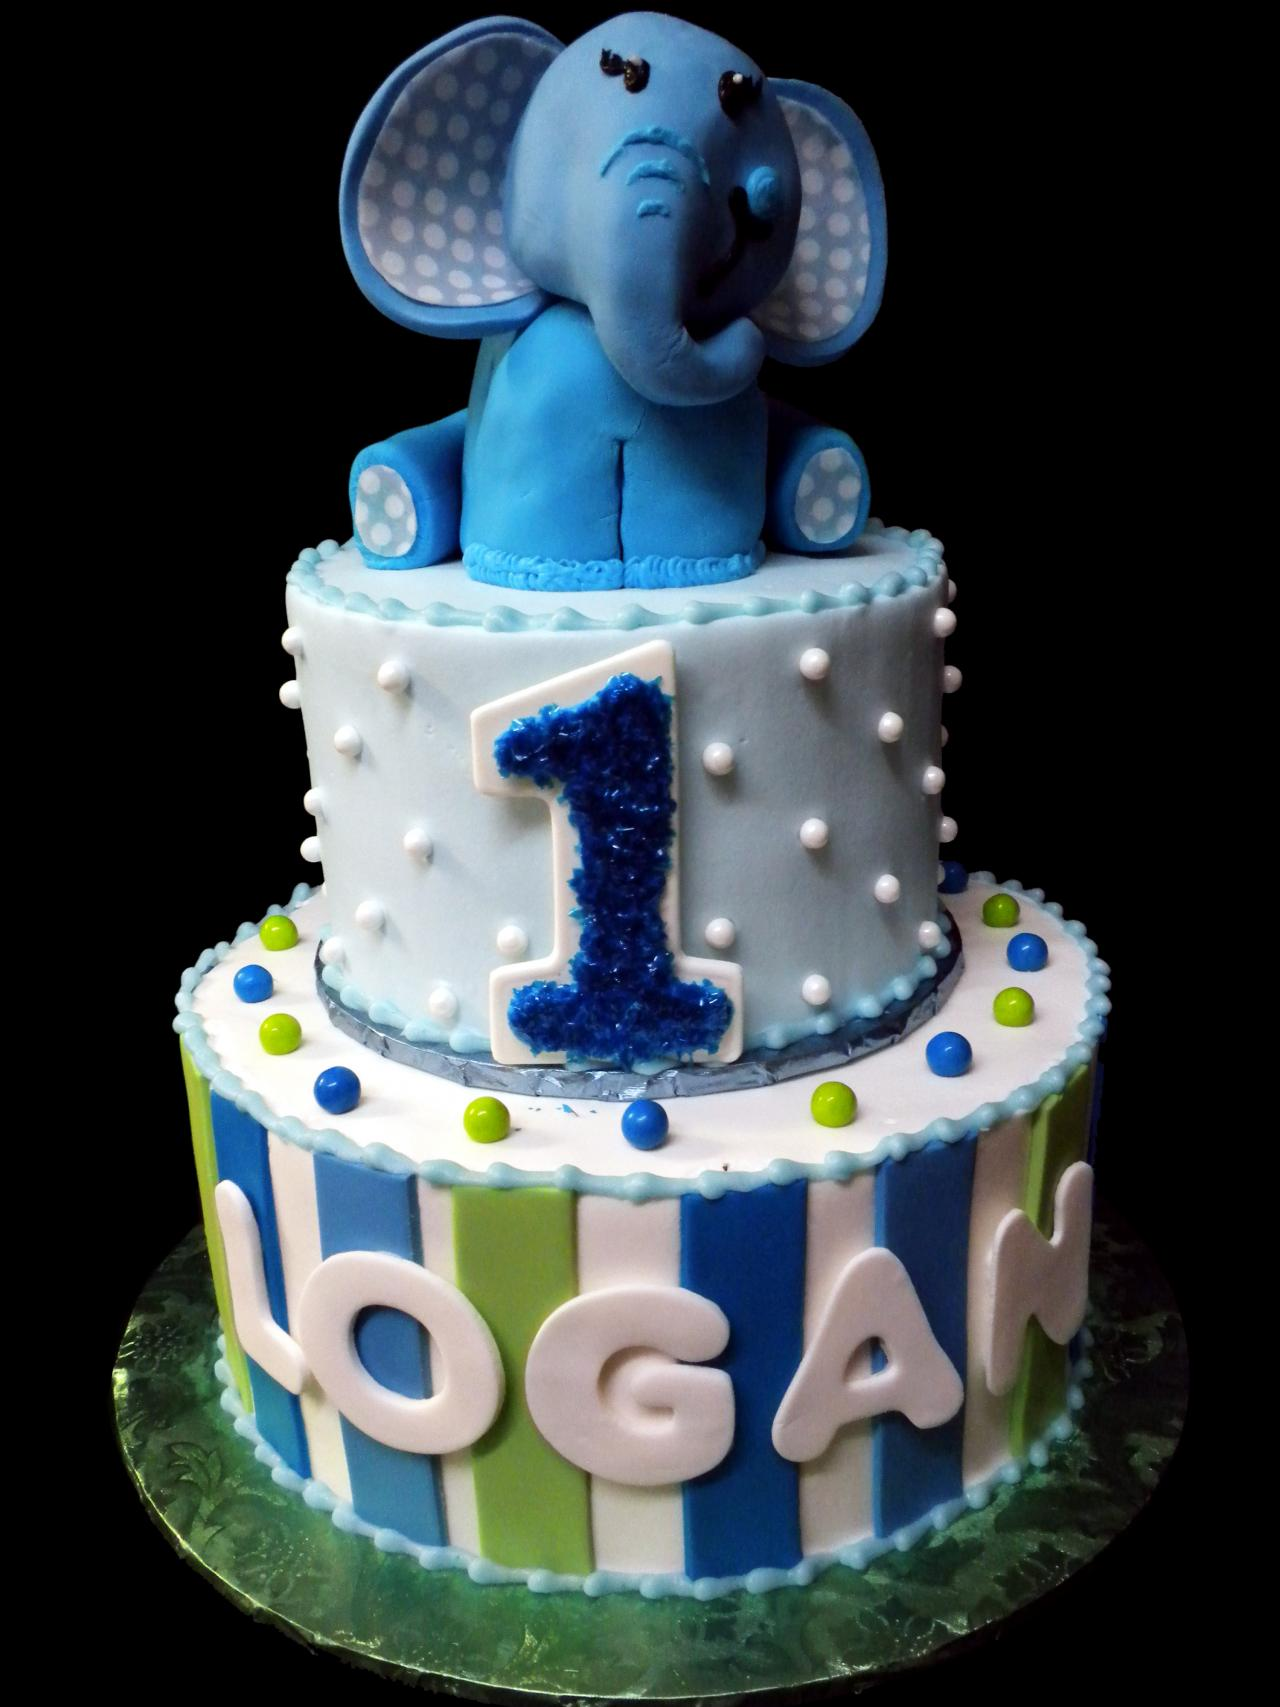 Elephant 1st Birthday Cake Blue And White Buttercream Iced 2 Round Tiers Decorated With